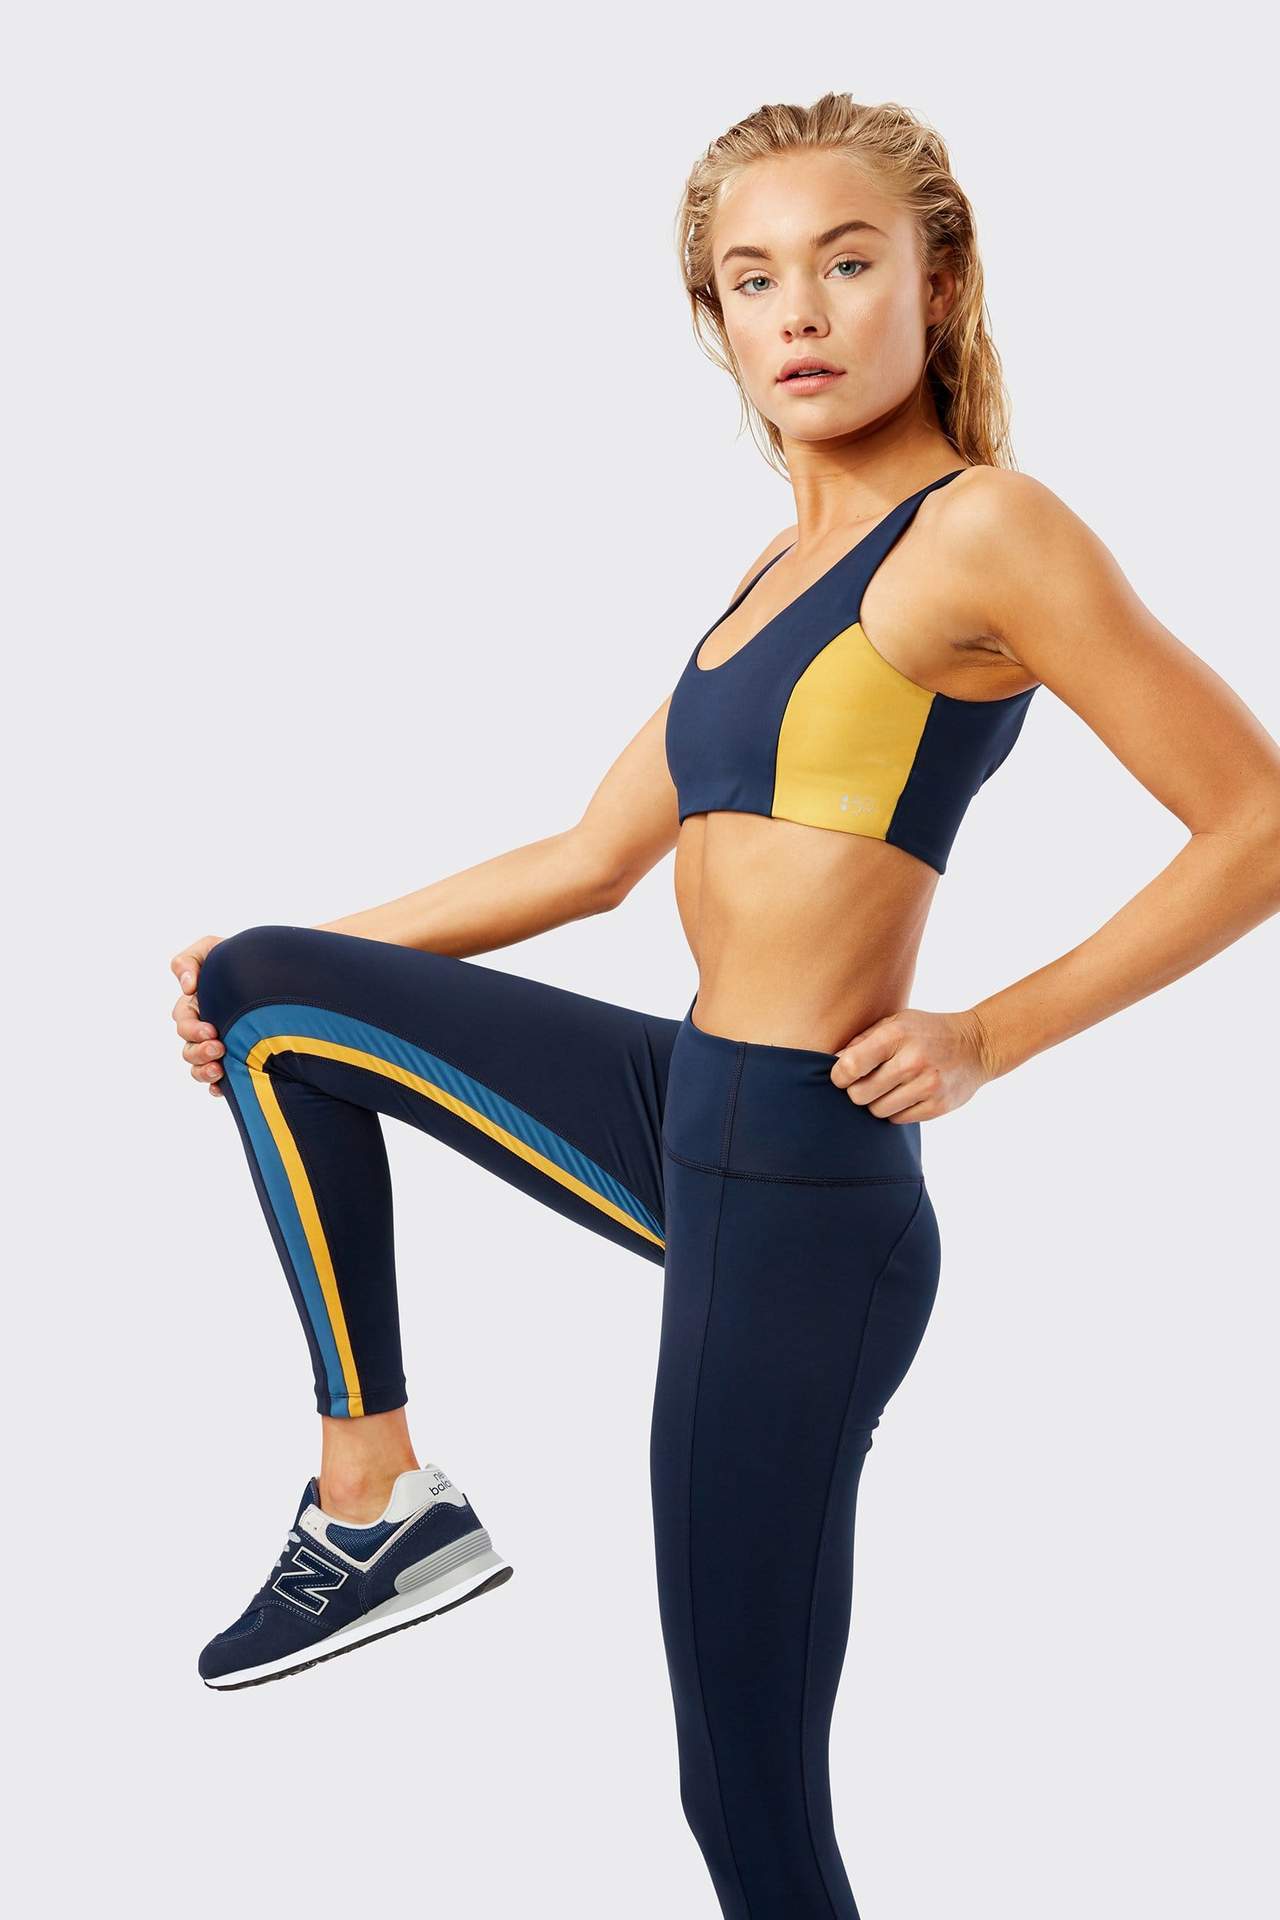 SPLITS59 - Aerial 7/8 Legging / $104.00The racing stripe on the inner leg makes these leggings stand out from the crowd.